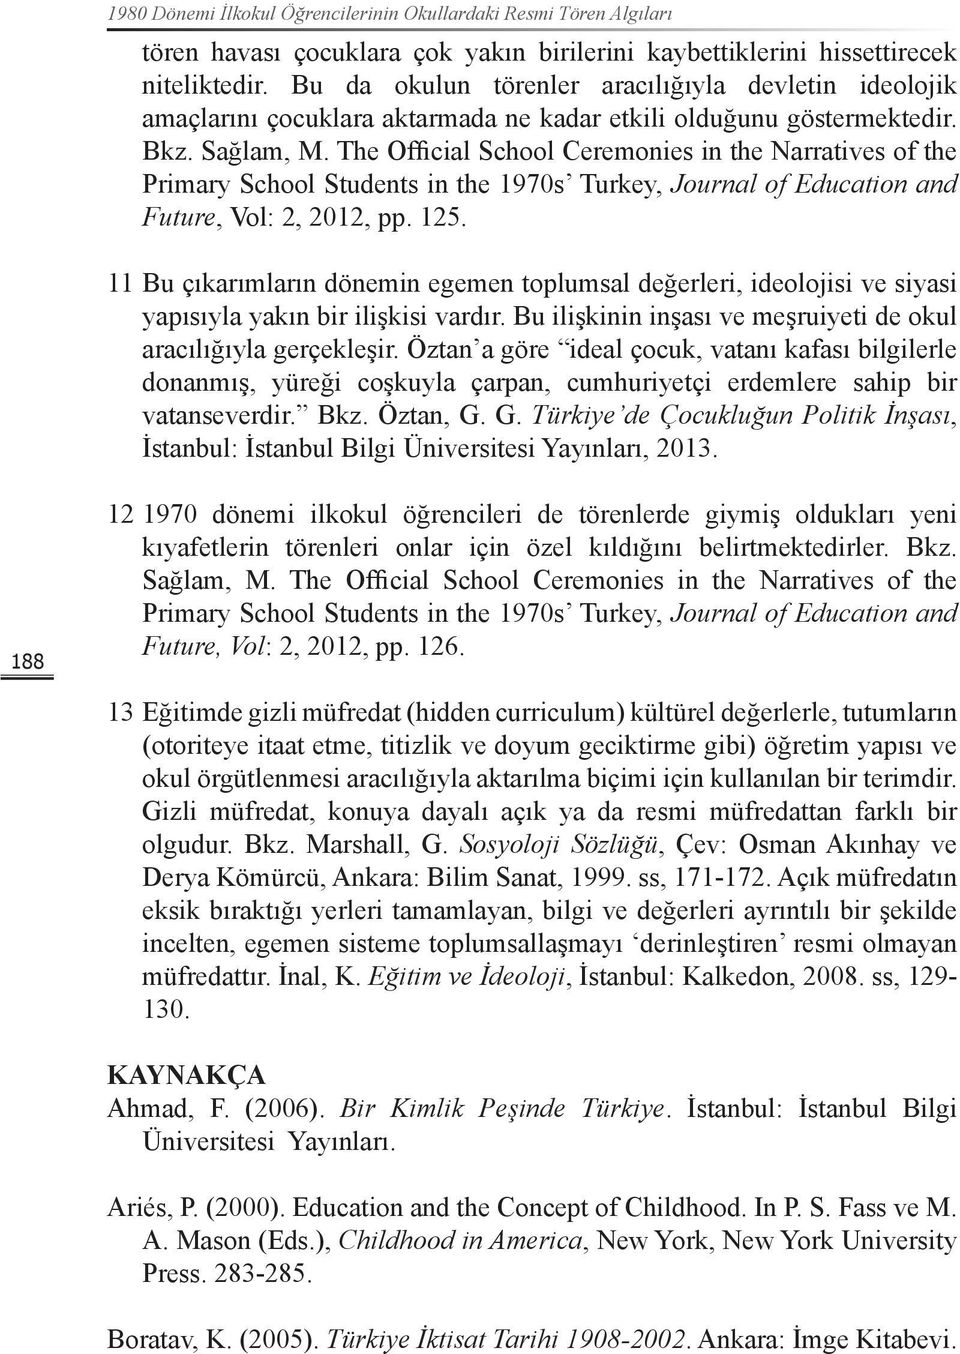 The Official School Ceremonies in the Narratives of the Primary School Students in the 1970s Turkey, Journal of Education and Future, Vol: 2, 2012, pp. 125.